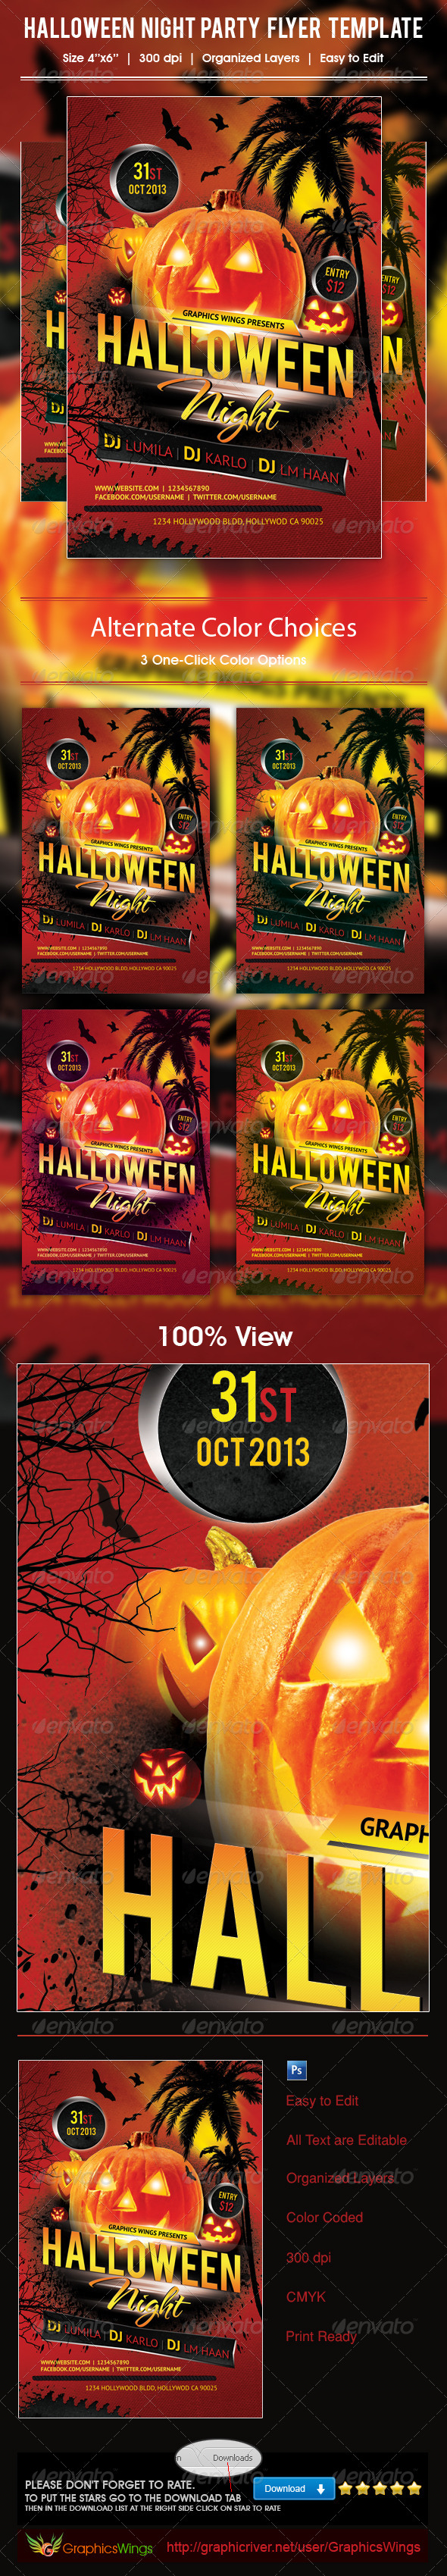 GraphicRiver Halloween Night Party Flyer Template 5942461